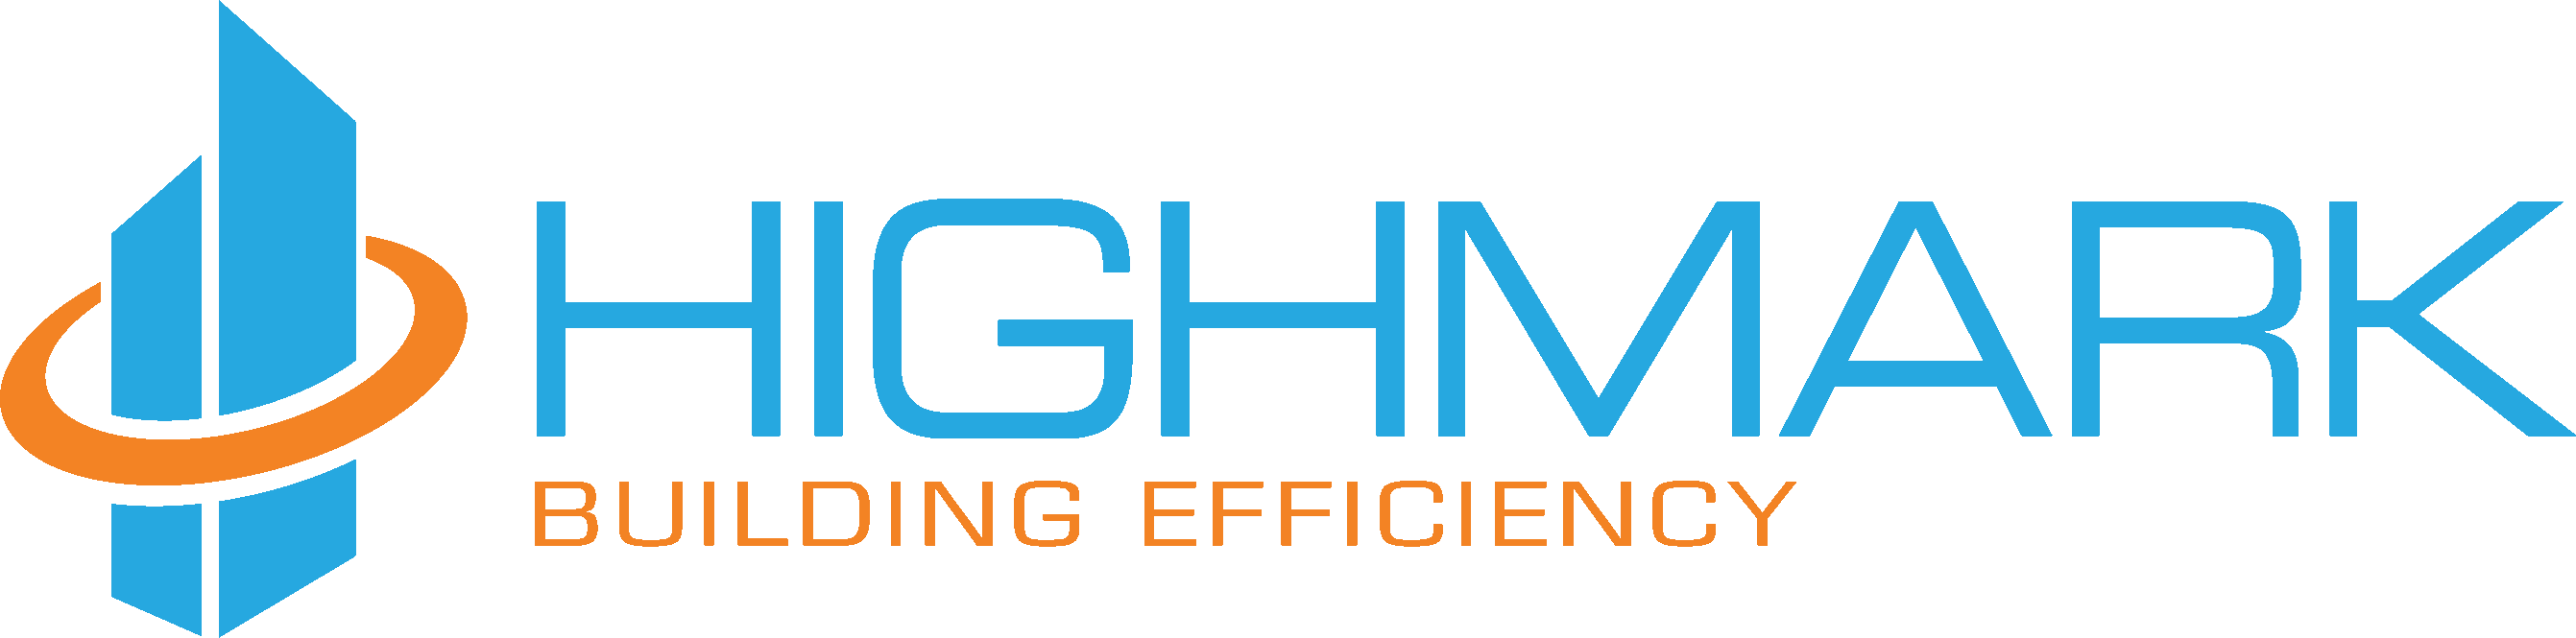 HIGHMARK | Building Efficiency